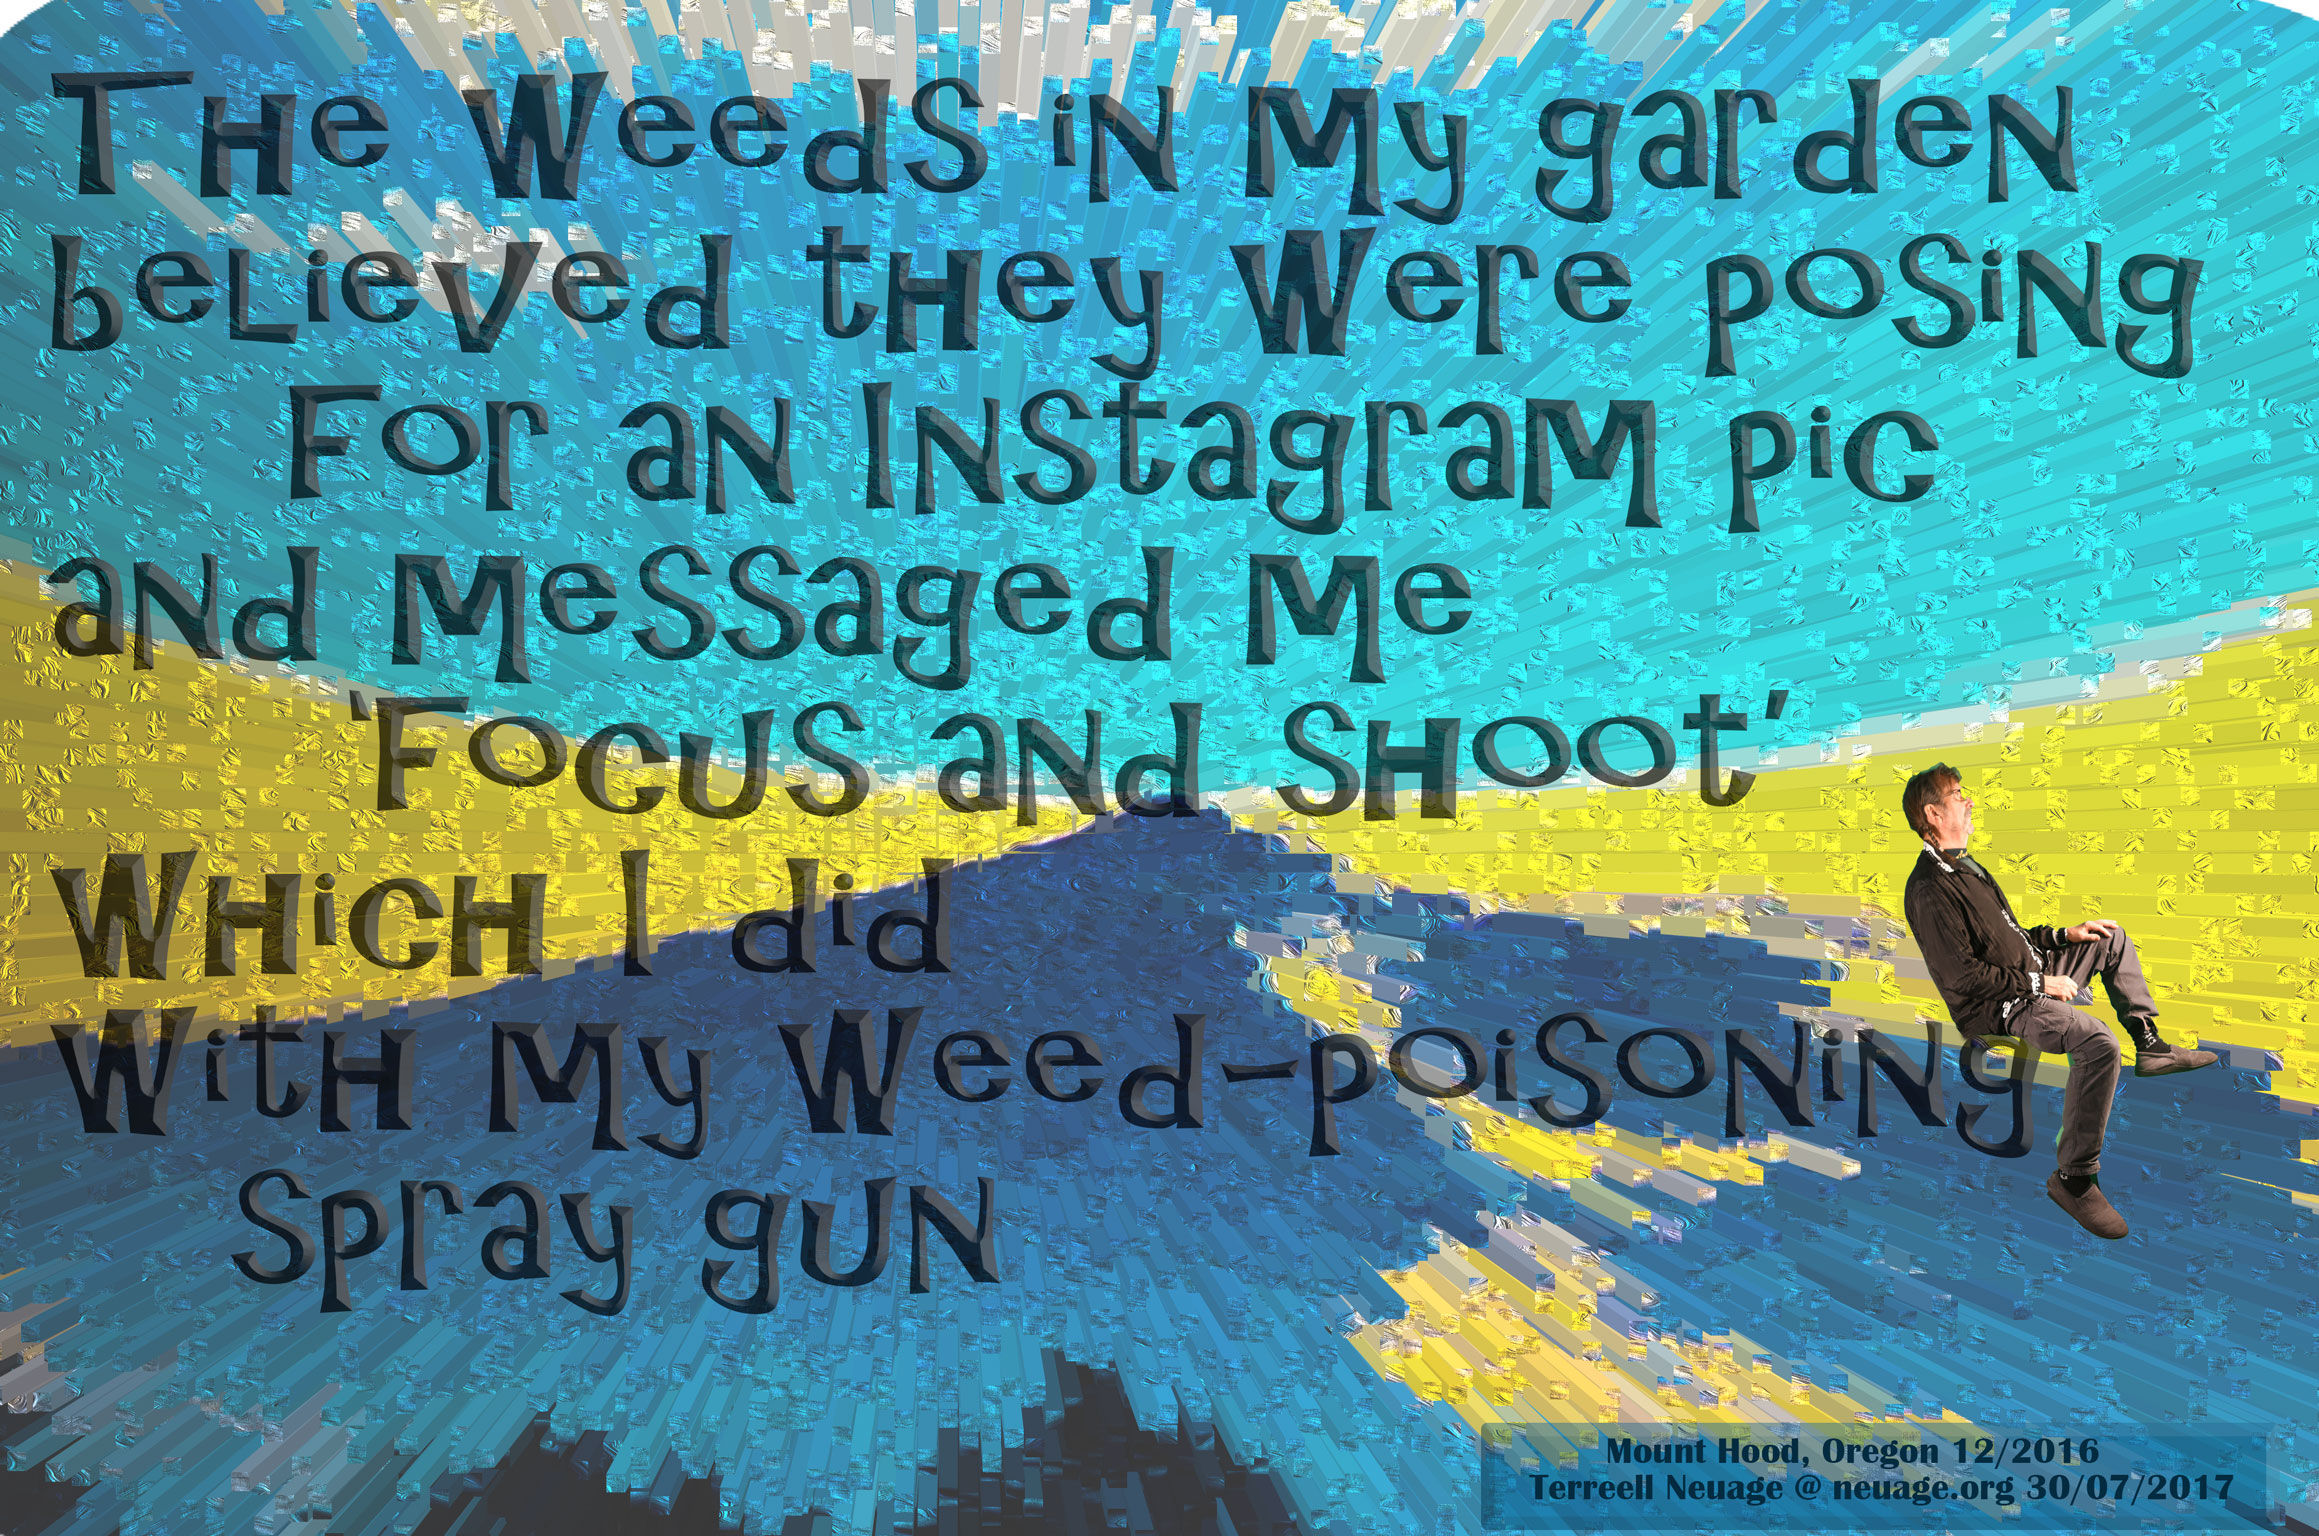 The weeds in my garden believed they were posing for an Instagram pic